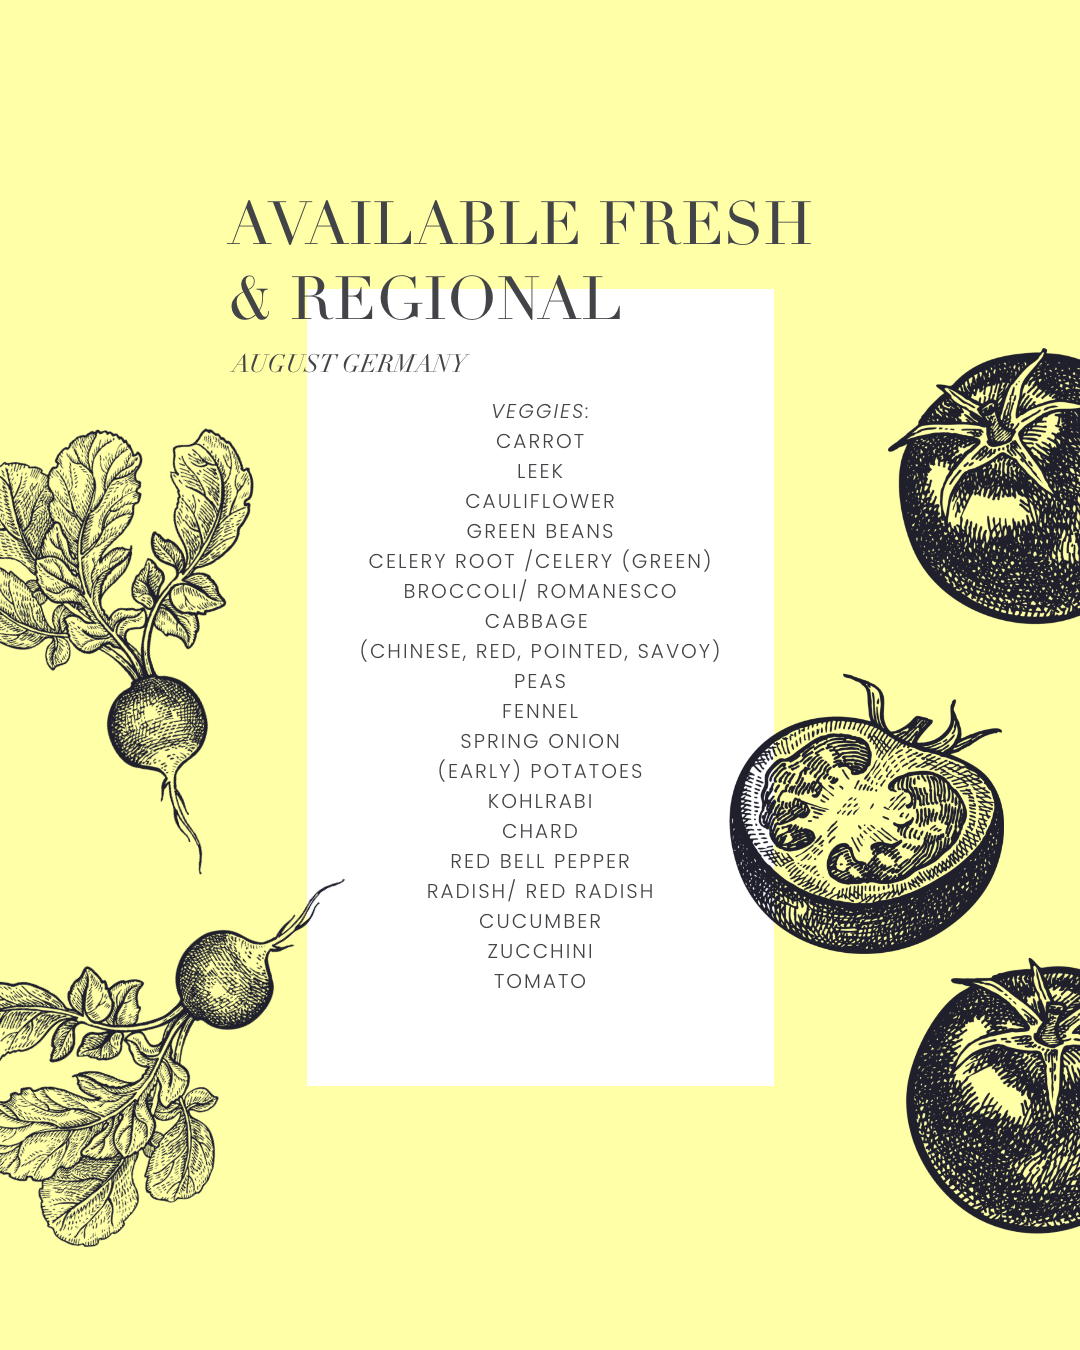 produce overview - available fresh and regional in august by bakd&raw